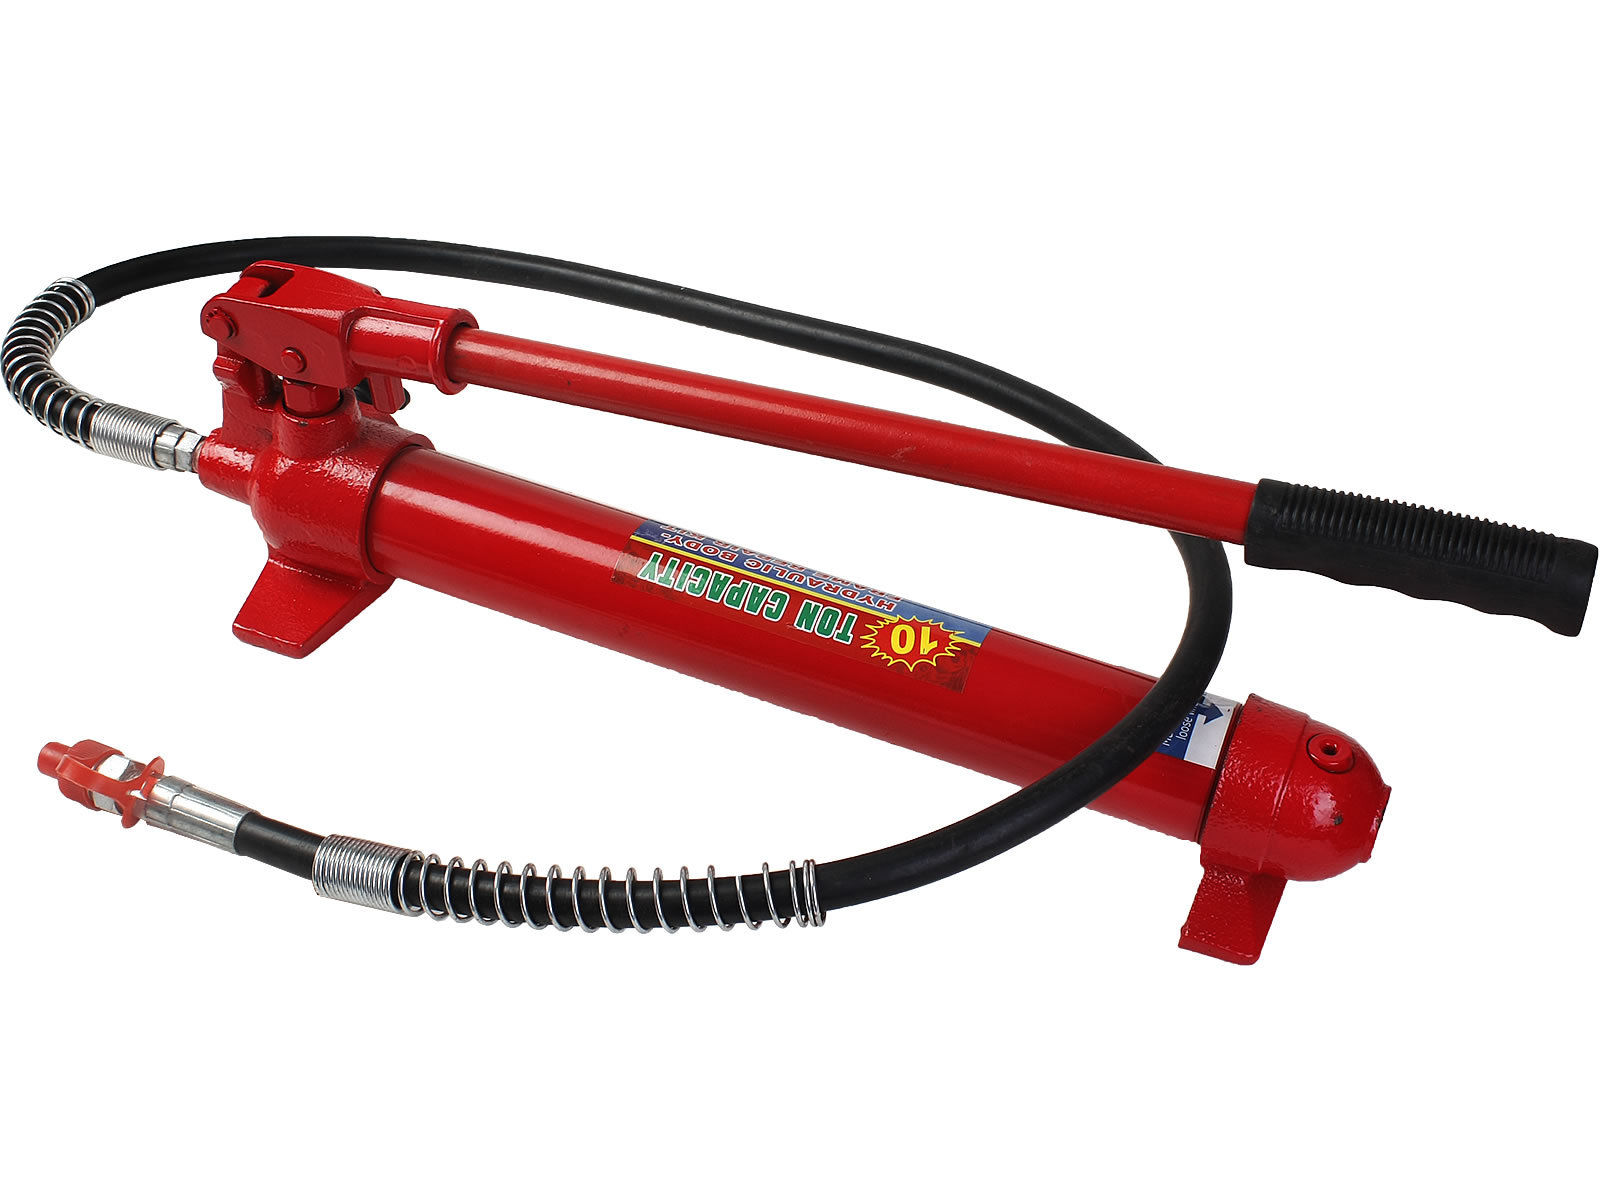 10 Ton Hydraulic Porta-Power Autobody and Frame Repair Kit - Uncle ...